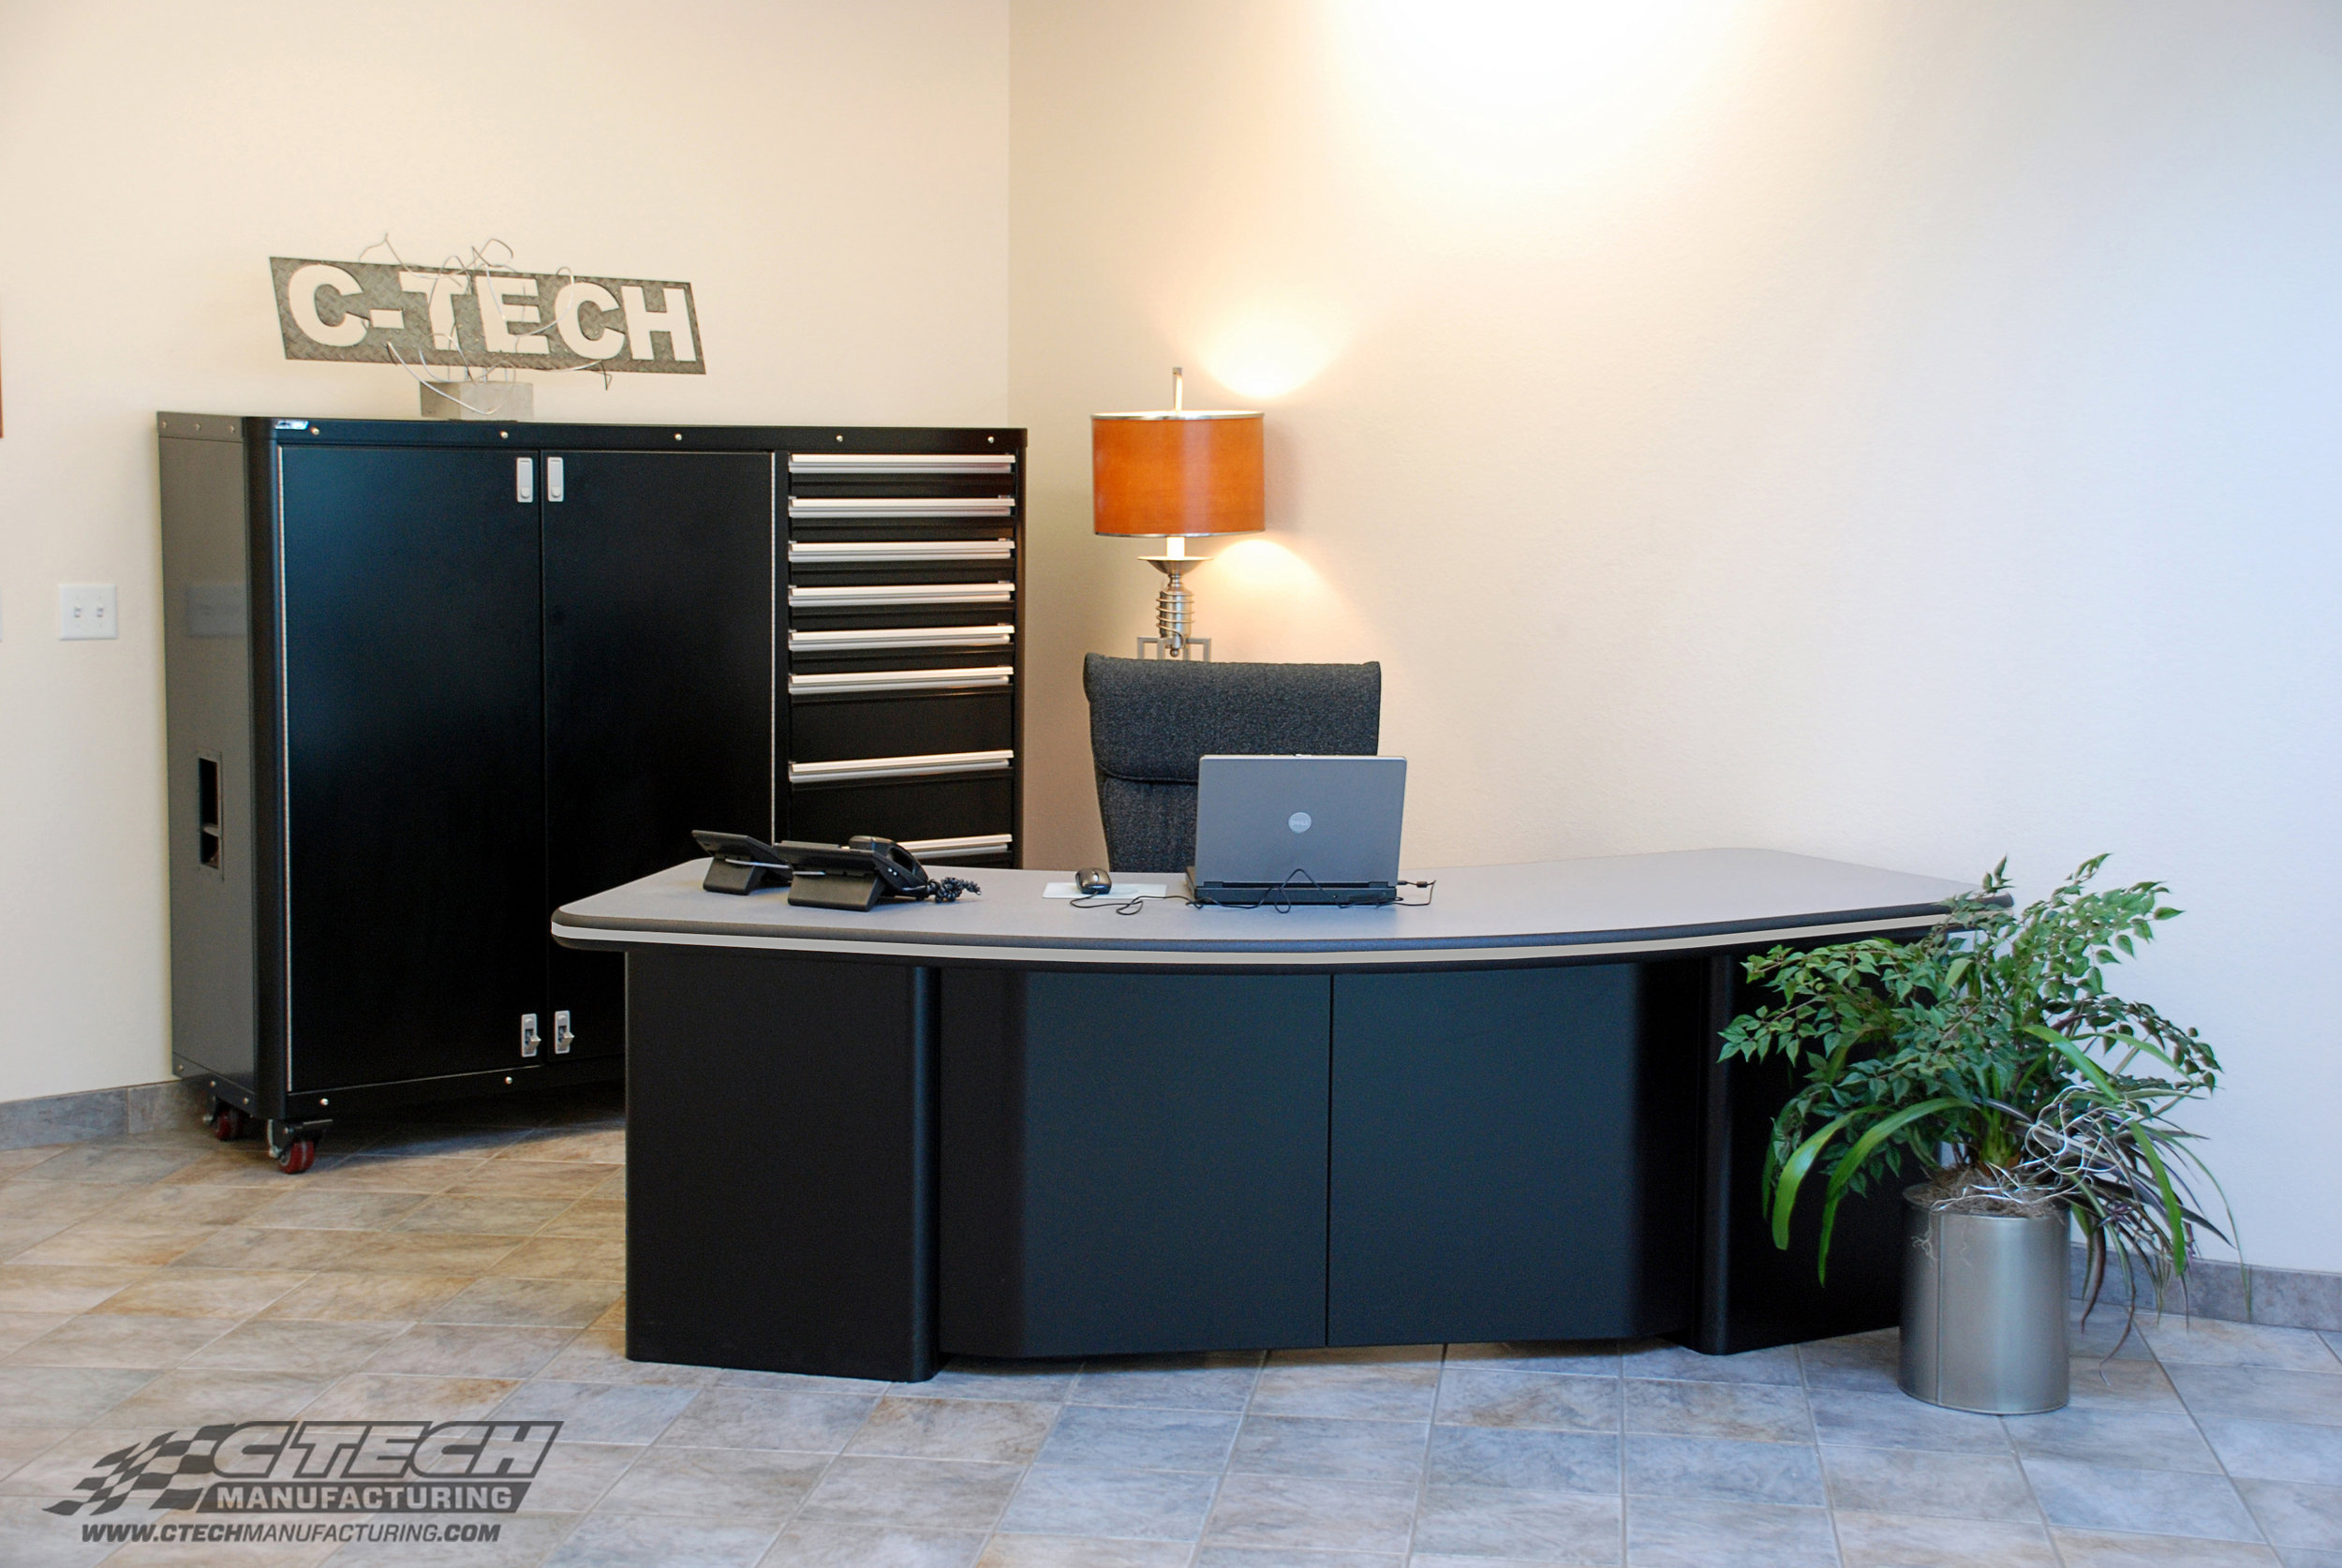 CTECH cabinets were developed and proven in the racing industry, but fit right in at the office! Ultra Series cabinets are available in two-tone color combinations, sleek radius-edge corners, countertop option, and a flush-faced design that supports a high-performance look.